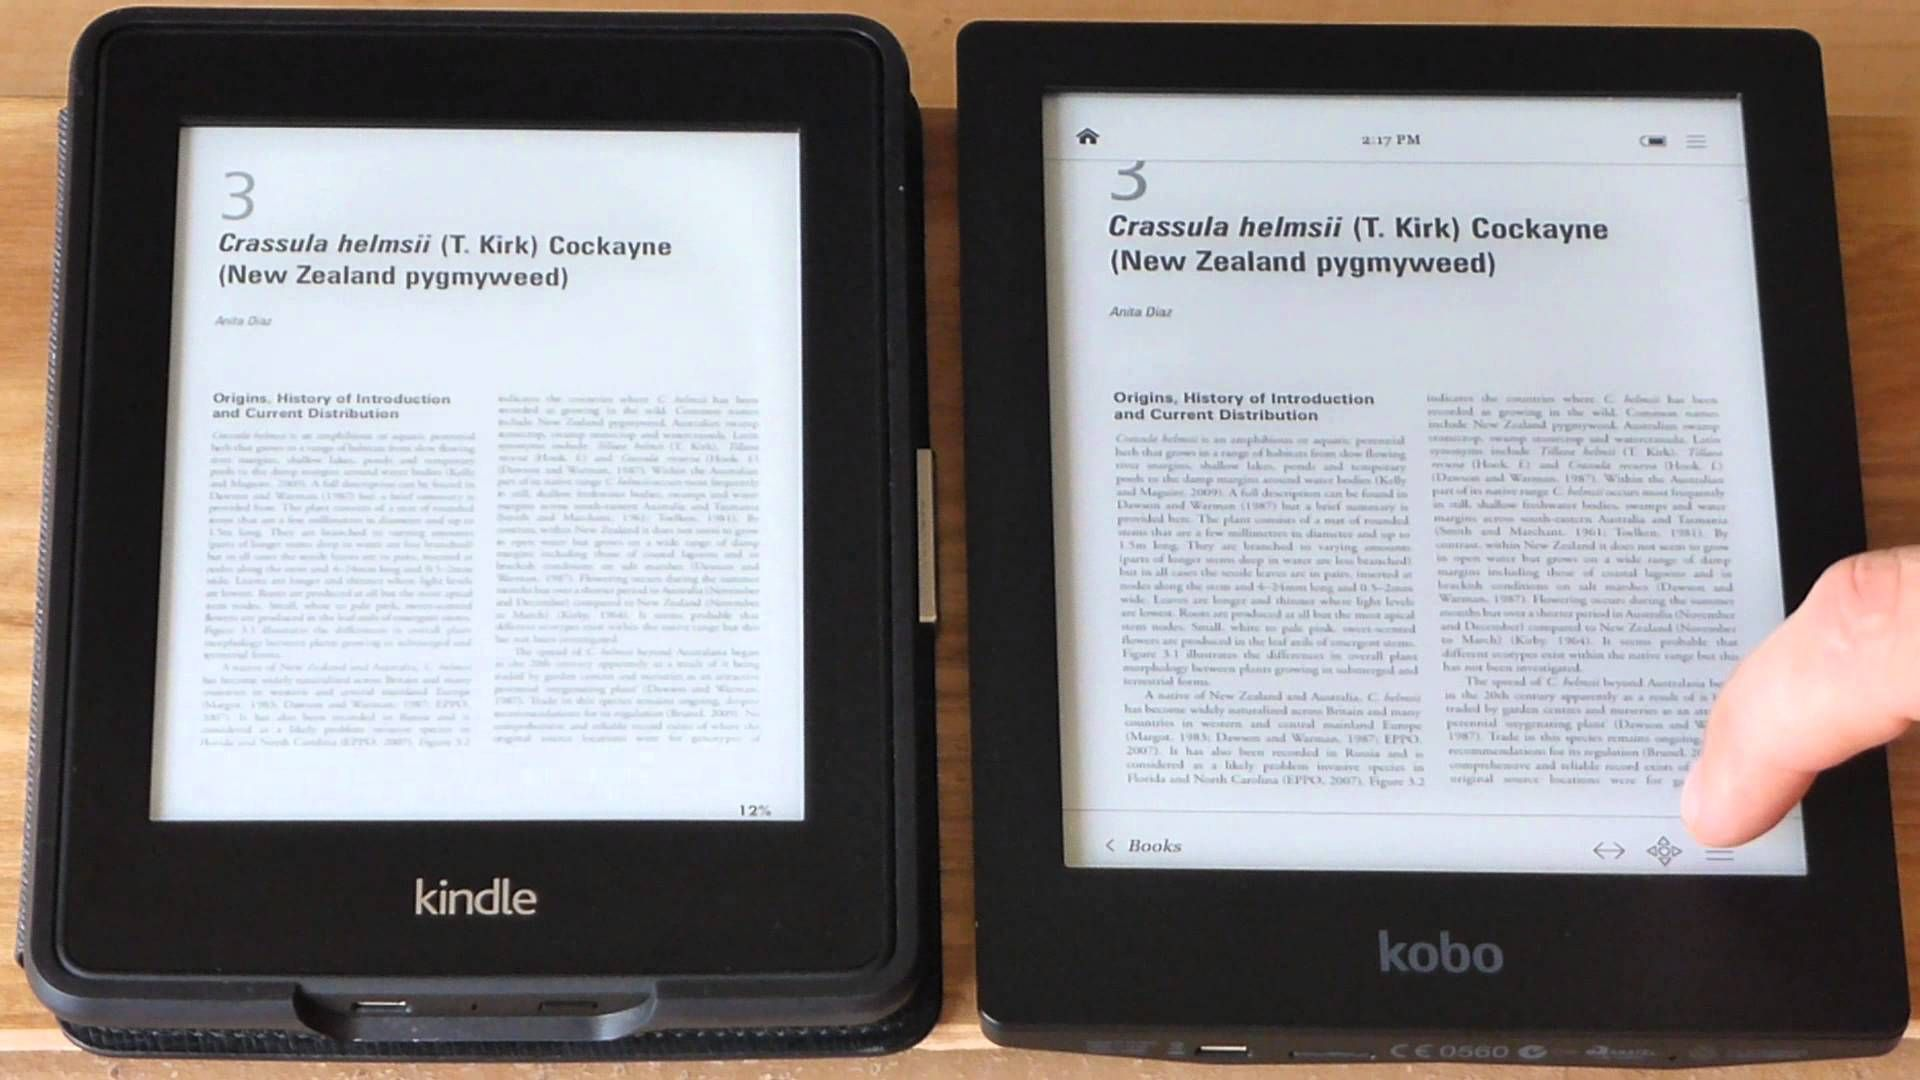 Kindle Paperwhite Vs Kobo Aura Hd In Pdf Viewing Kindle Paperwhite Kindle Kobo